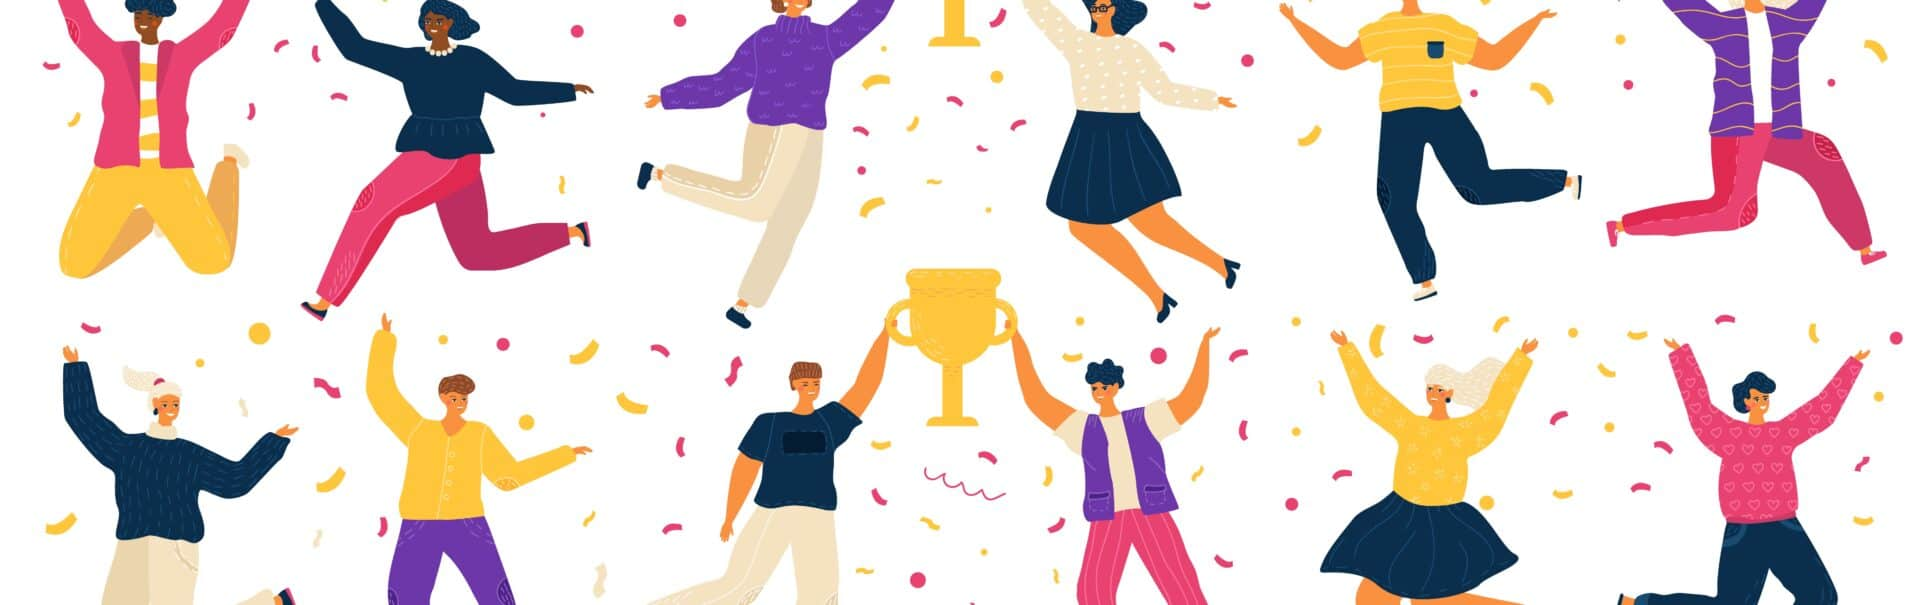 Jumping People, Happy Carton Characters, Award Winner Vector Illustration. Men And Women Celebrating Victory In Competition, Cheerful People Jump With Trophy Award. Contest Winner Celebration Party